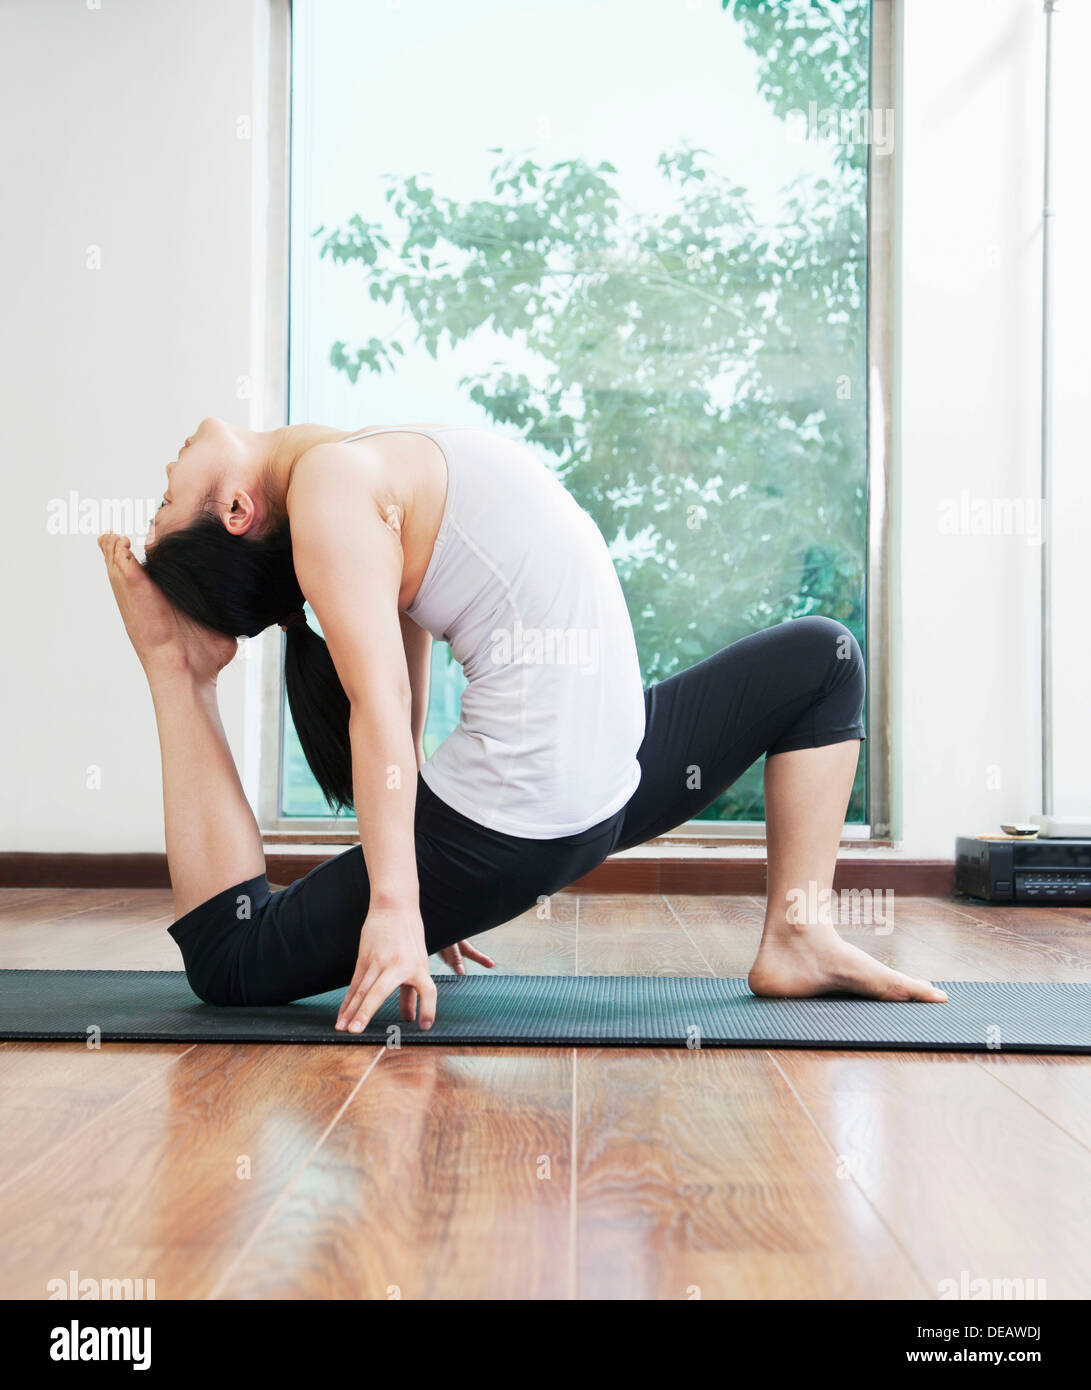 Woman bent over backwards in a yoga position in a yoga studio, side view - Stock Image